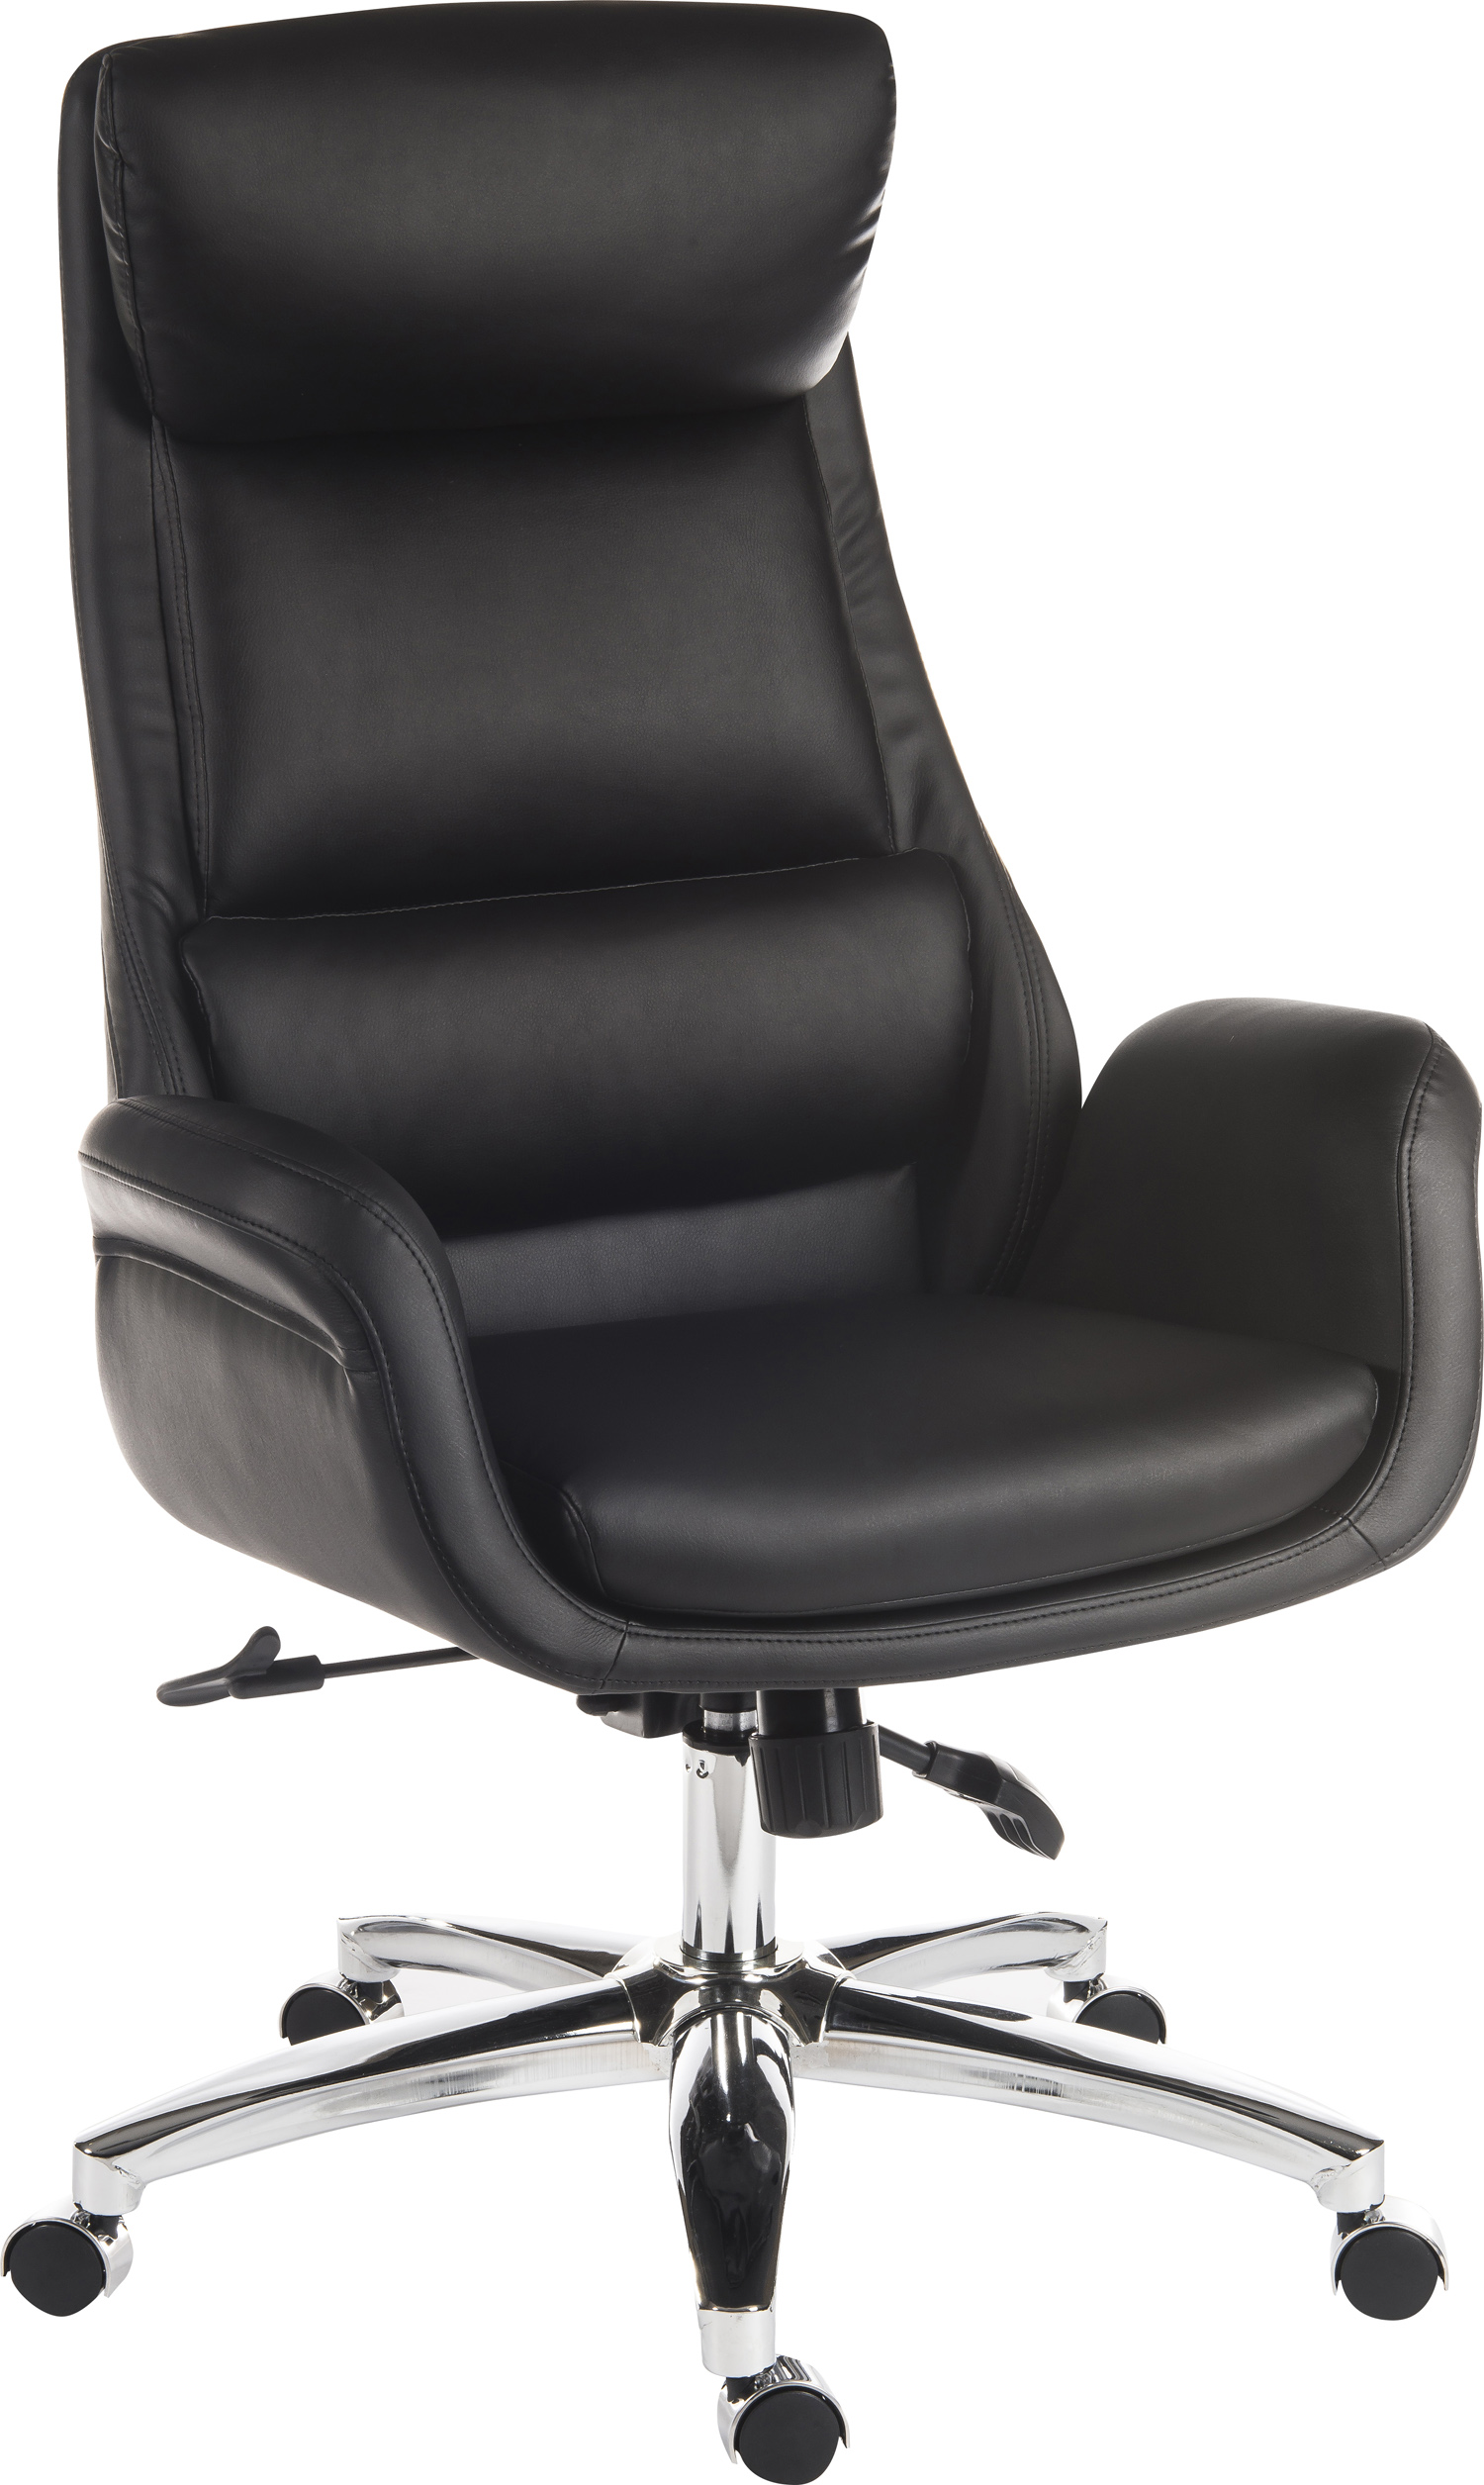 Ambassador Reclining Leather Office Chair